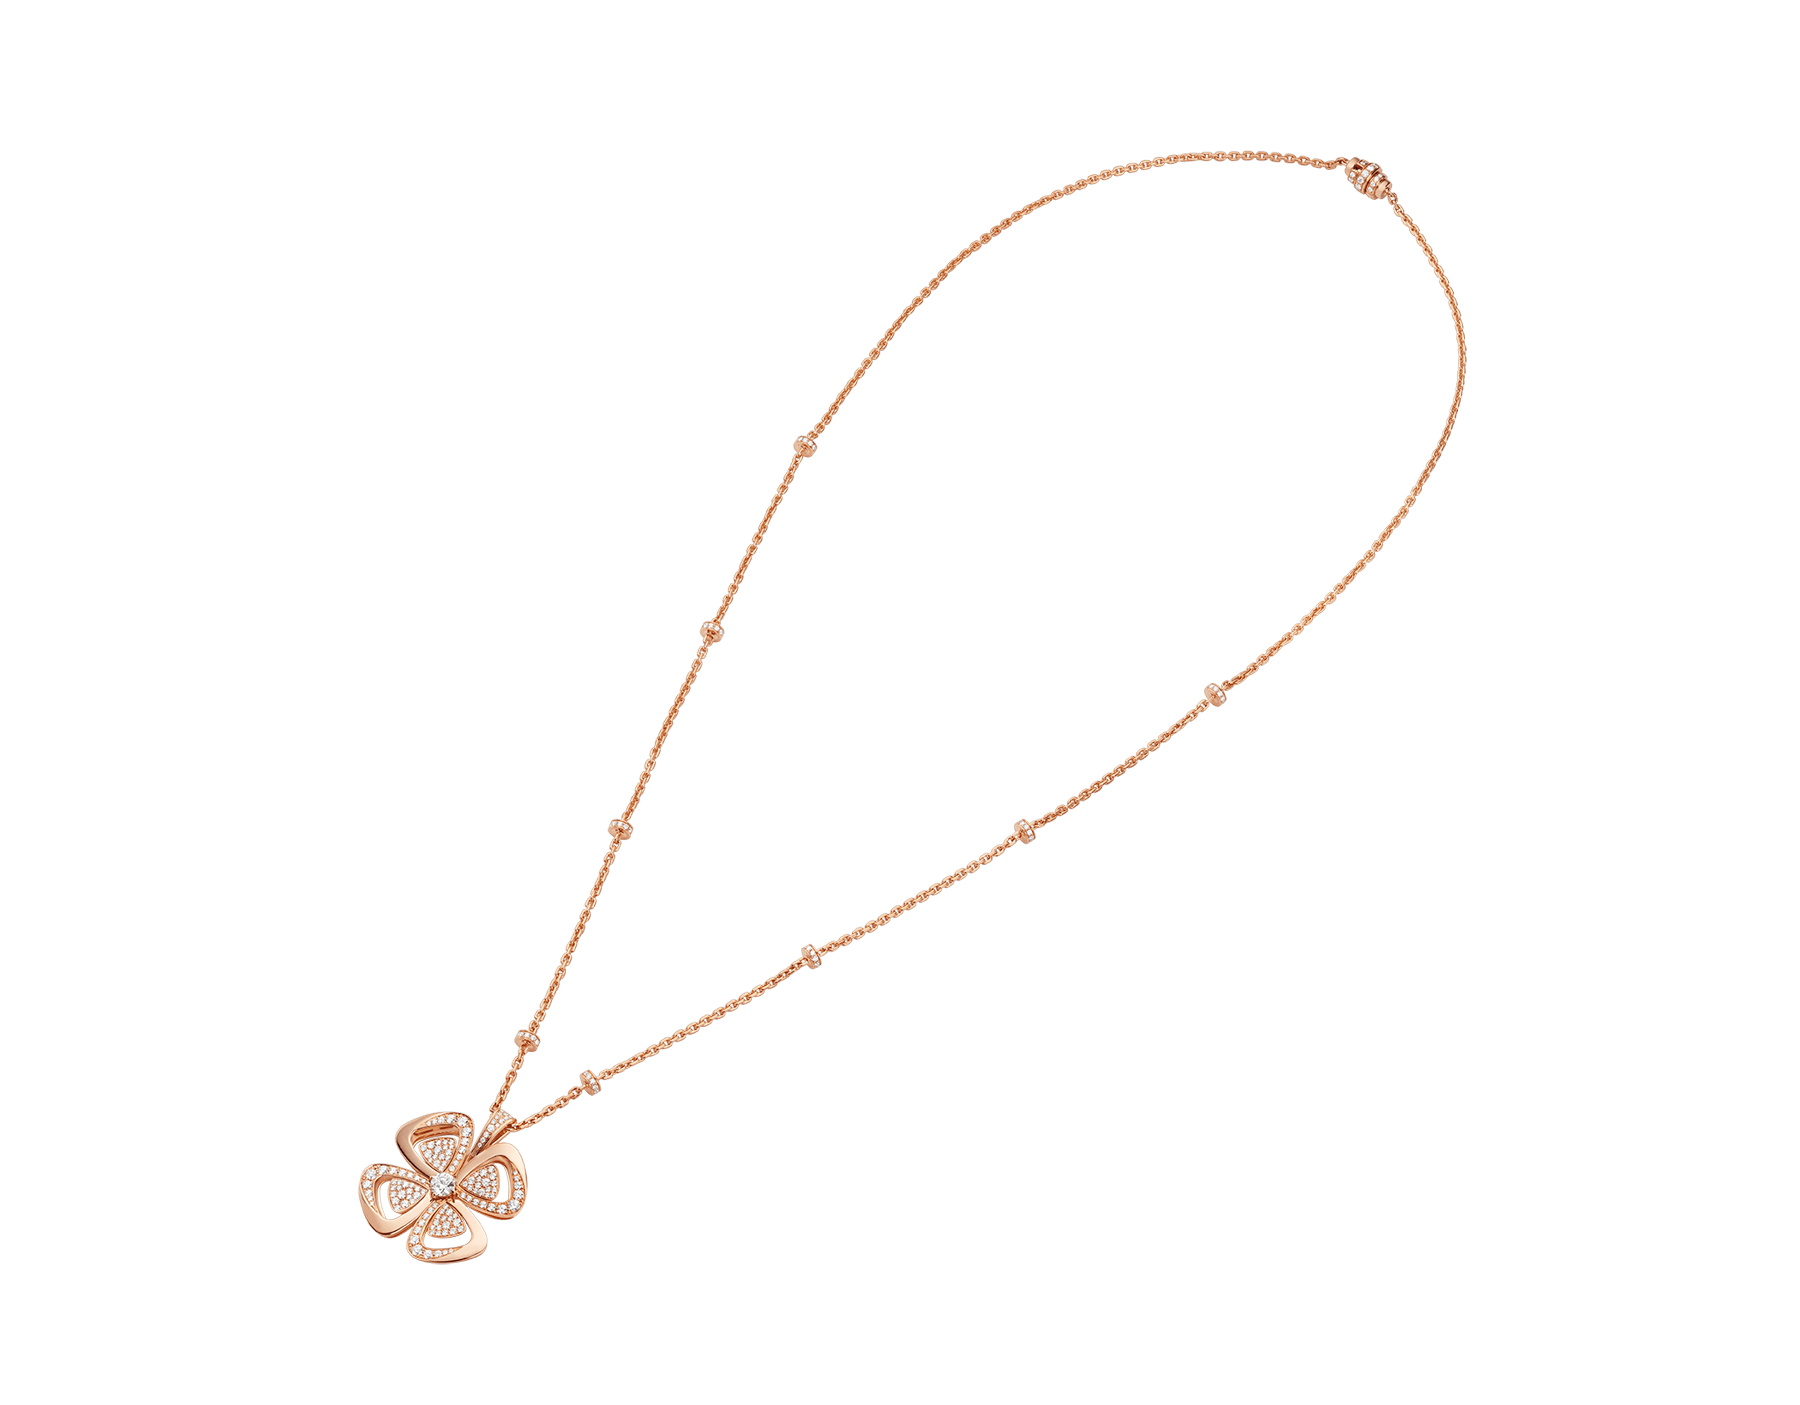 Fiorever 18 kt rose gold necklace set with a central round brilliant-cut diamond (0.70 ct) and pavé diamonds (3.55 ct) 357218 image 2